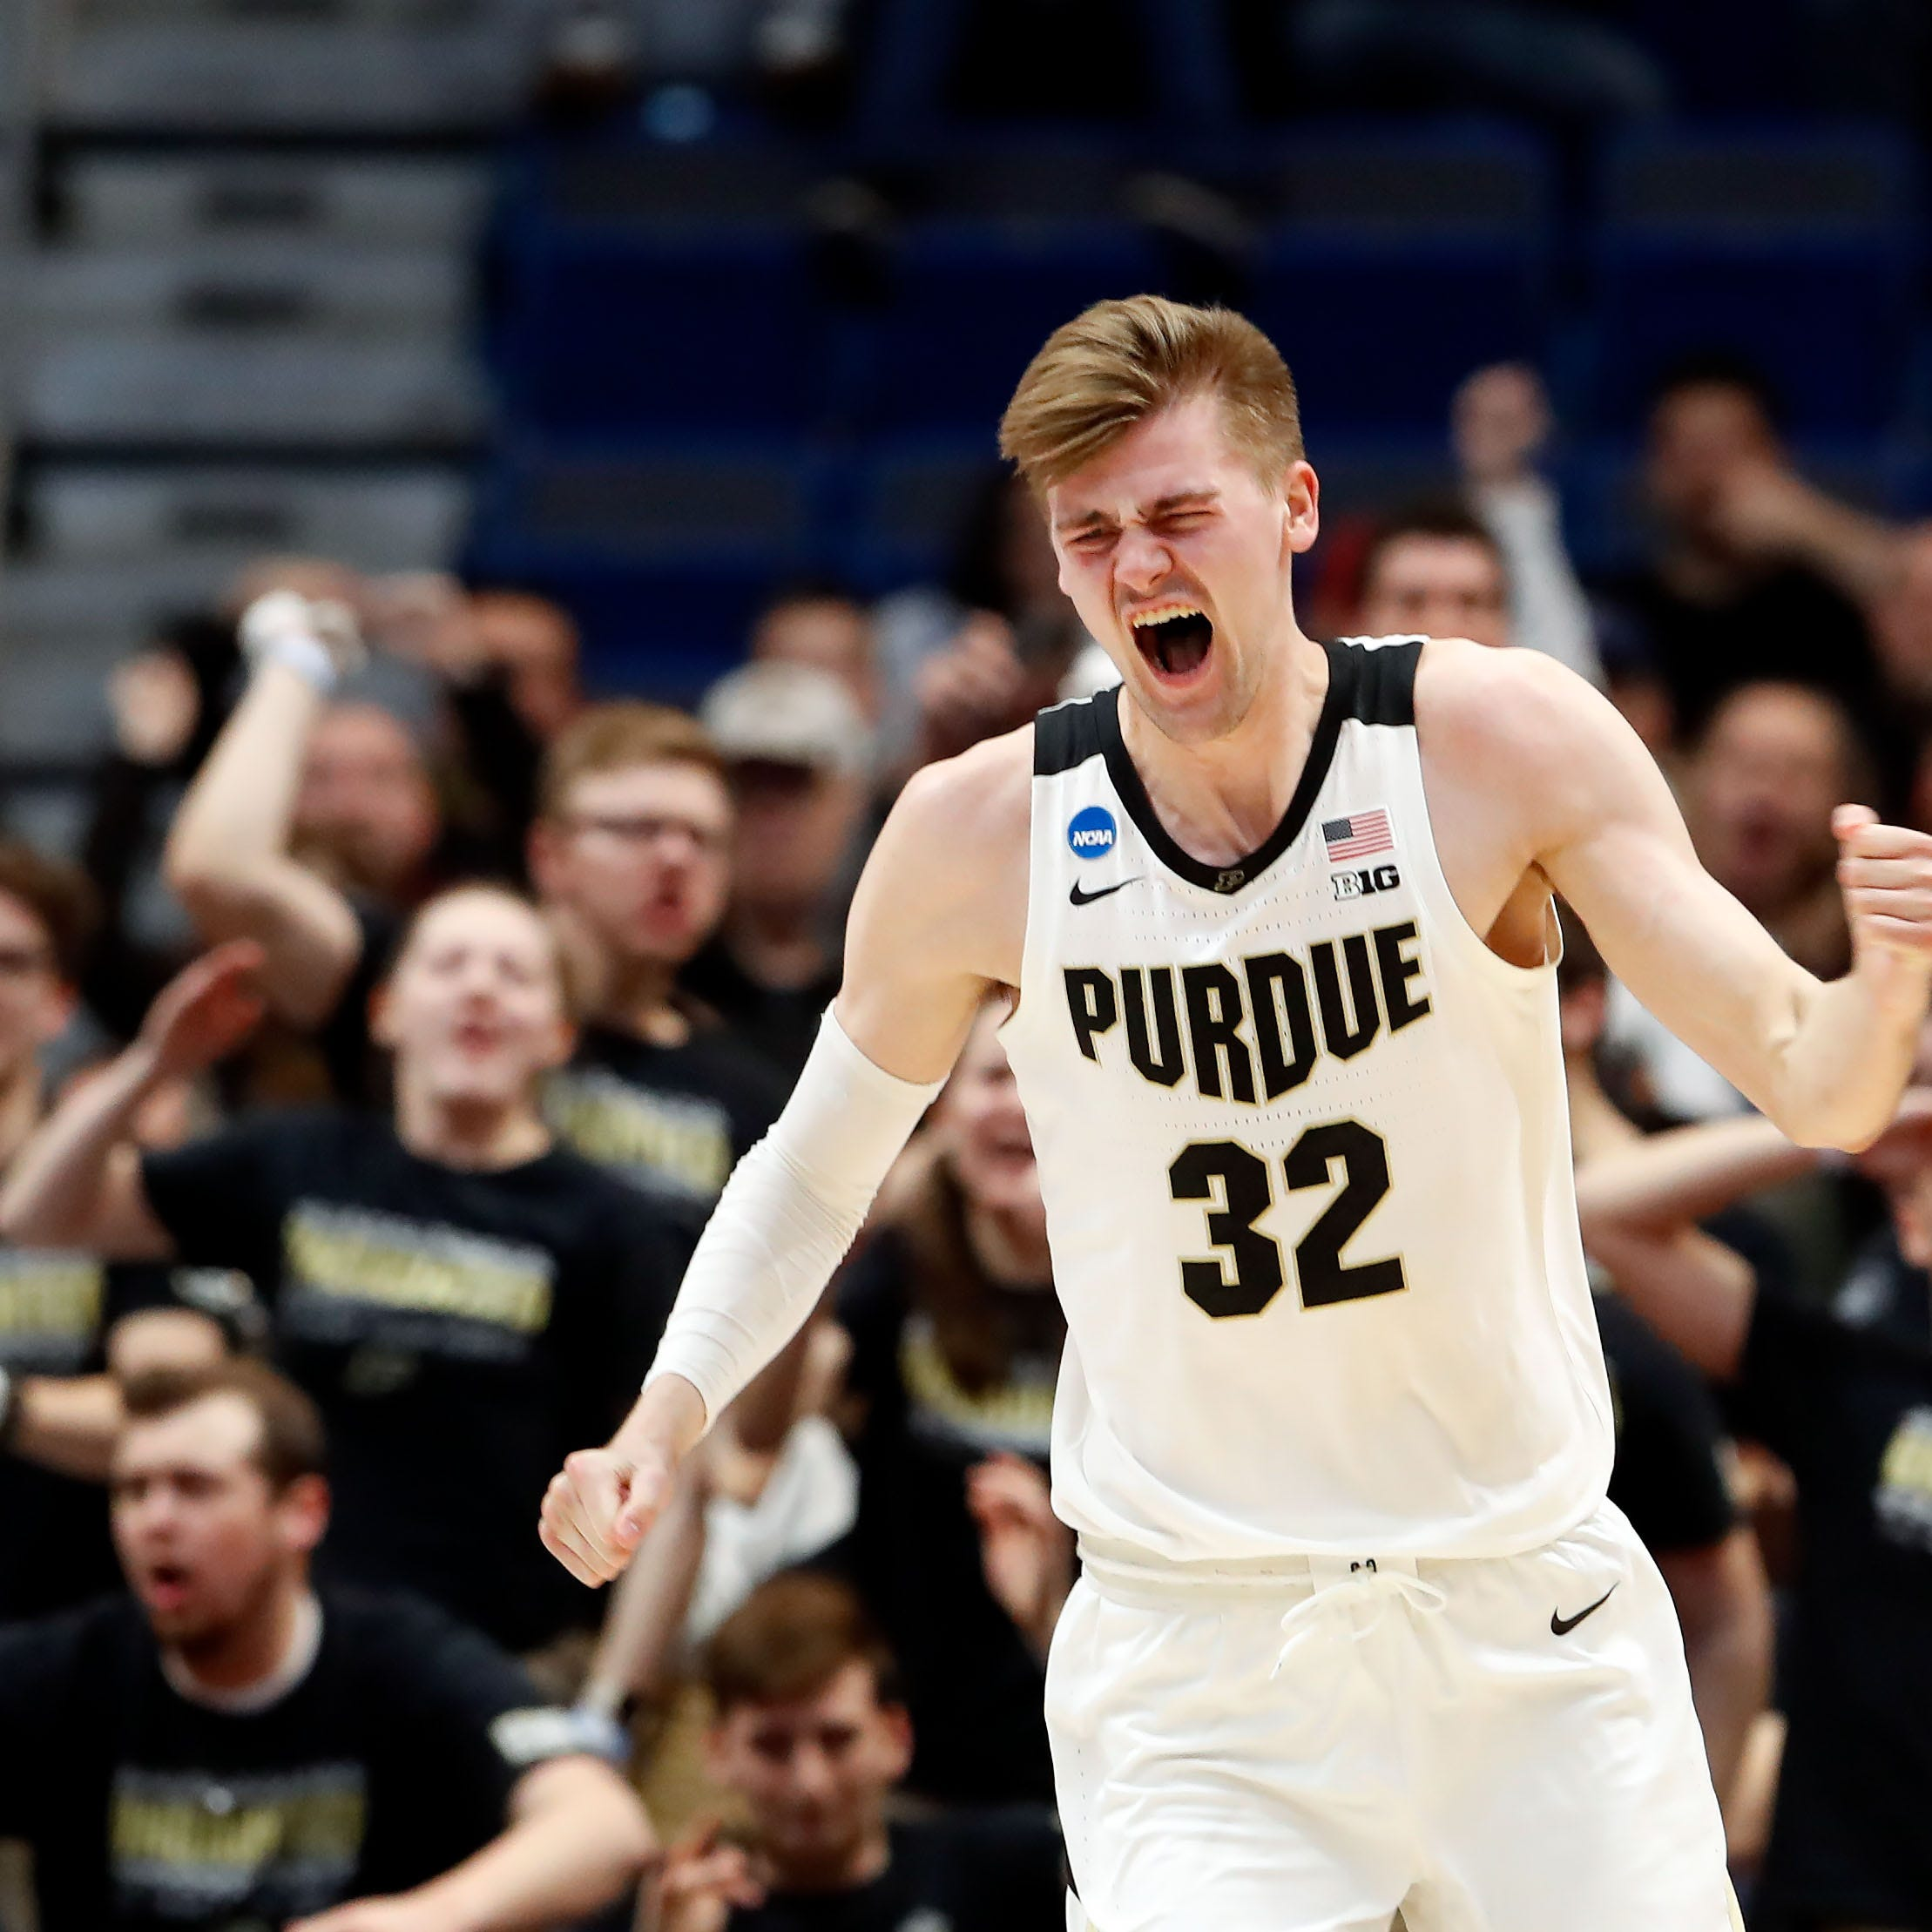 Insider: When a potential crisis emerged, Purdue basketball kept grinding vs. Old Dominion